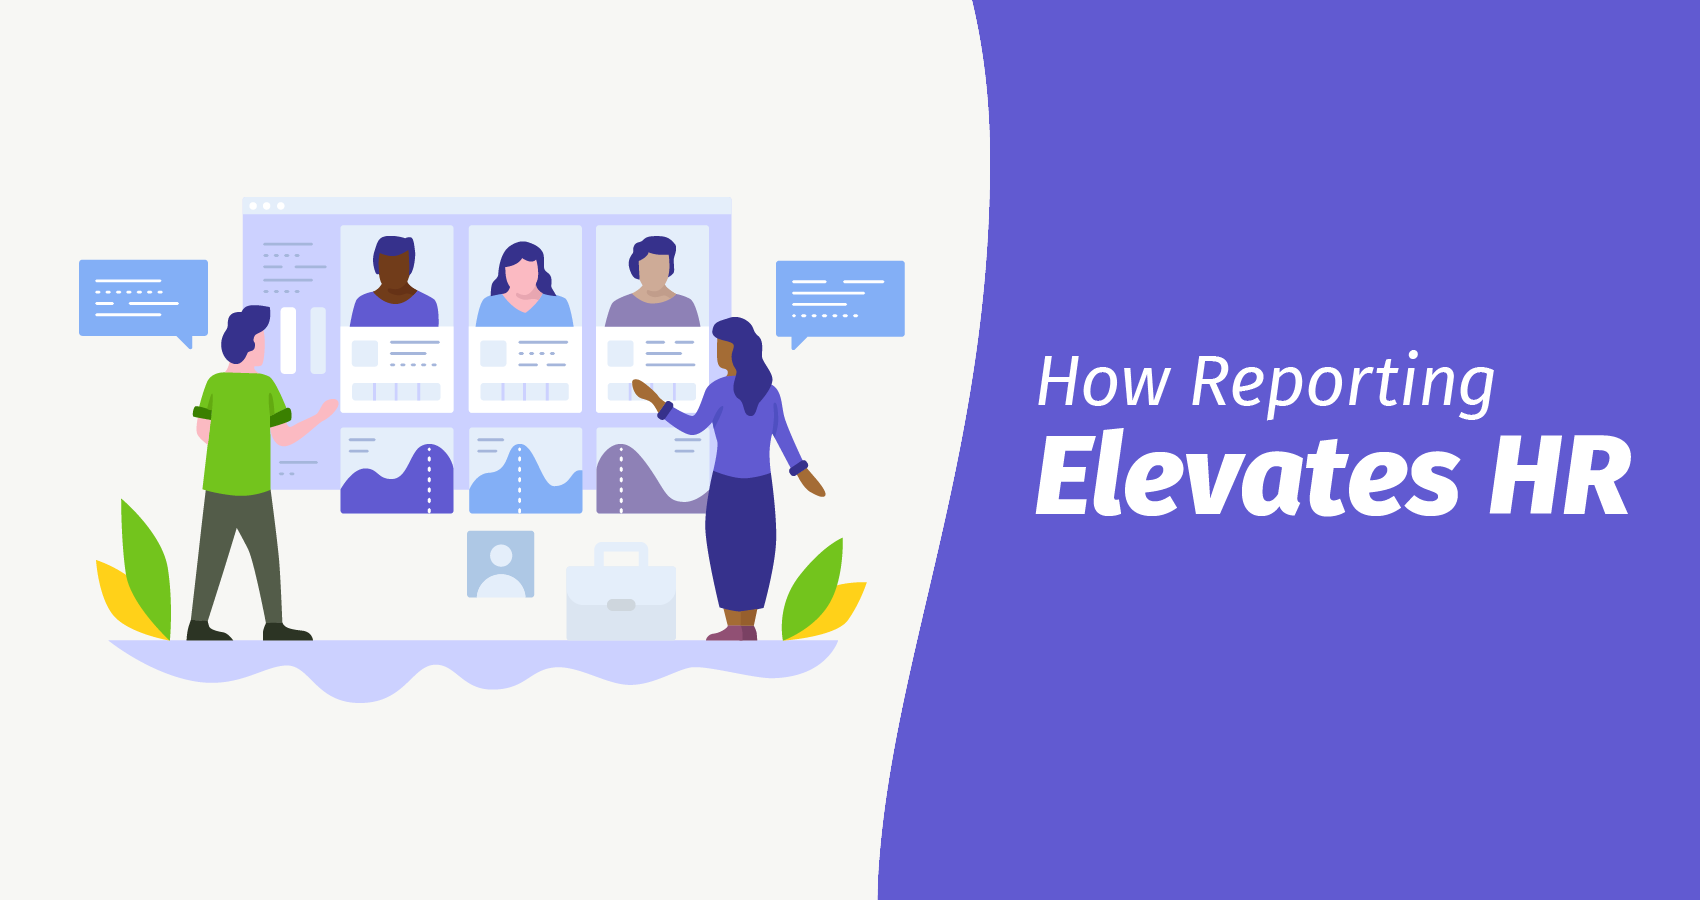 How Reporting Elevates HR